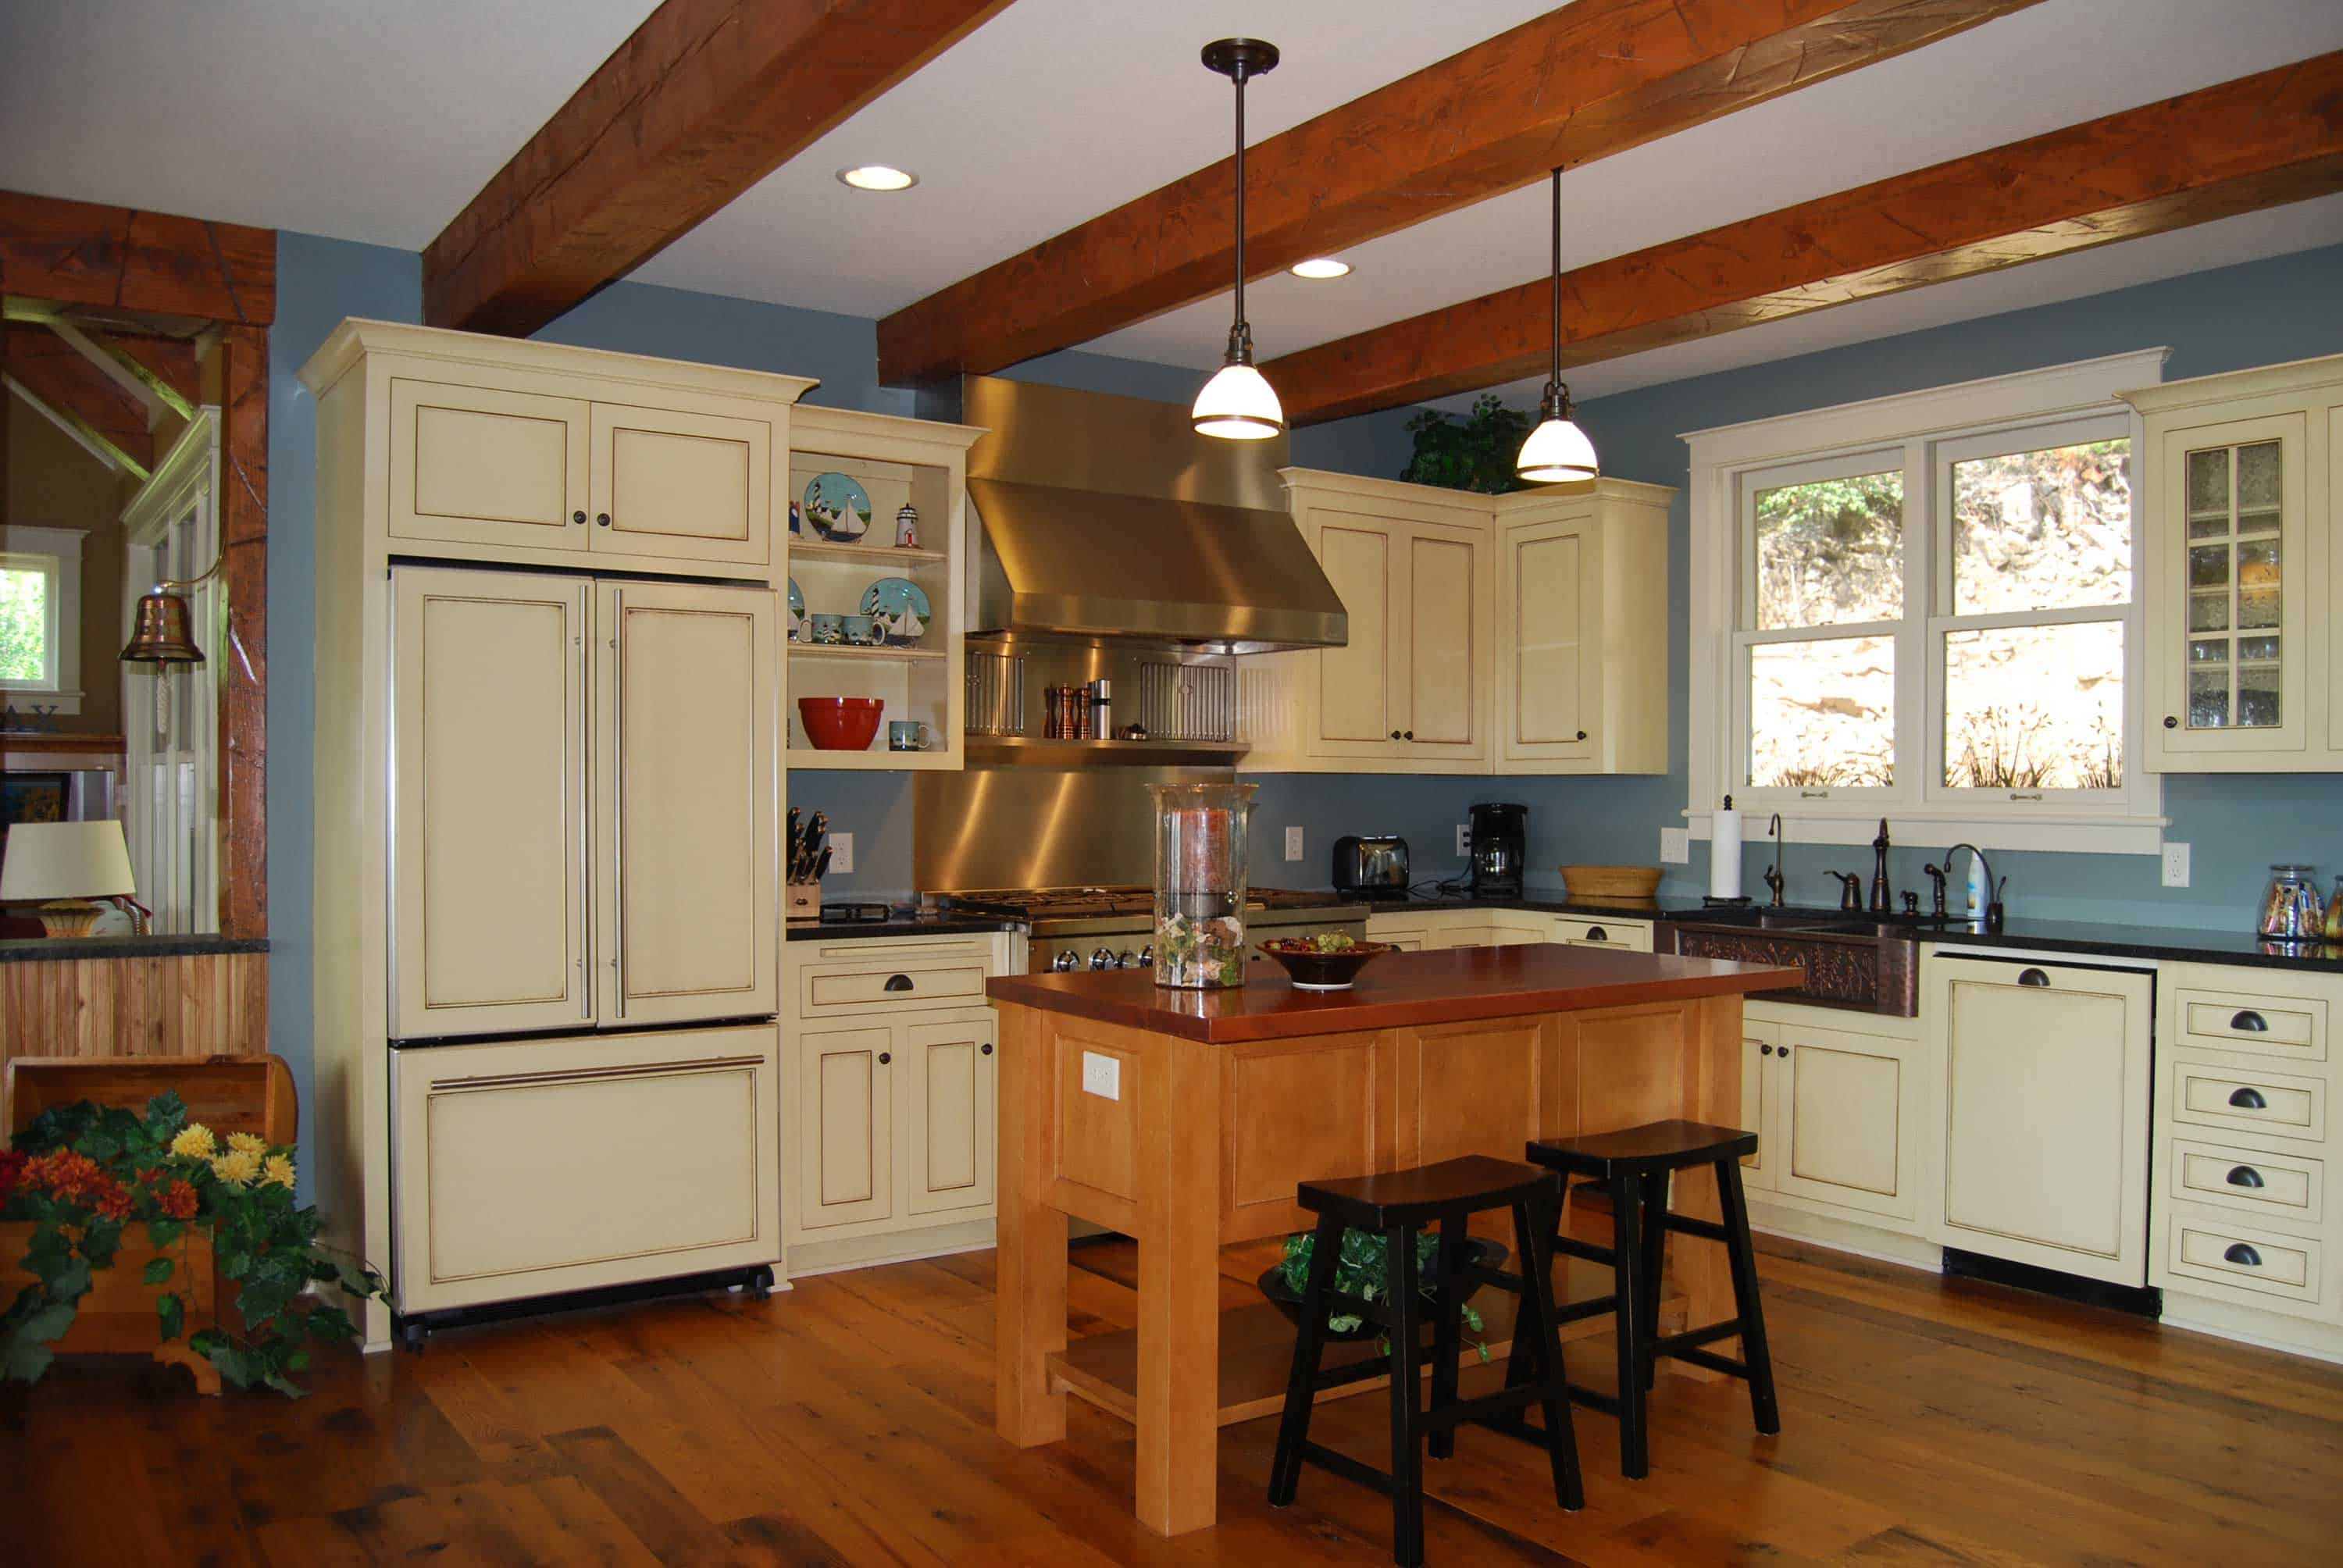 Country kitchen with cream, blue, and hardwood.